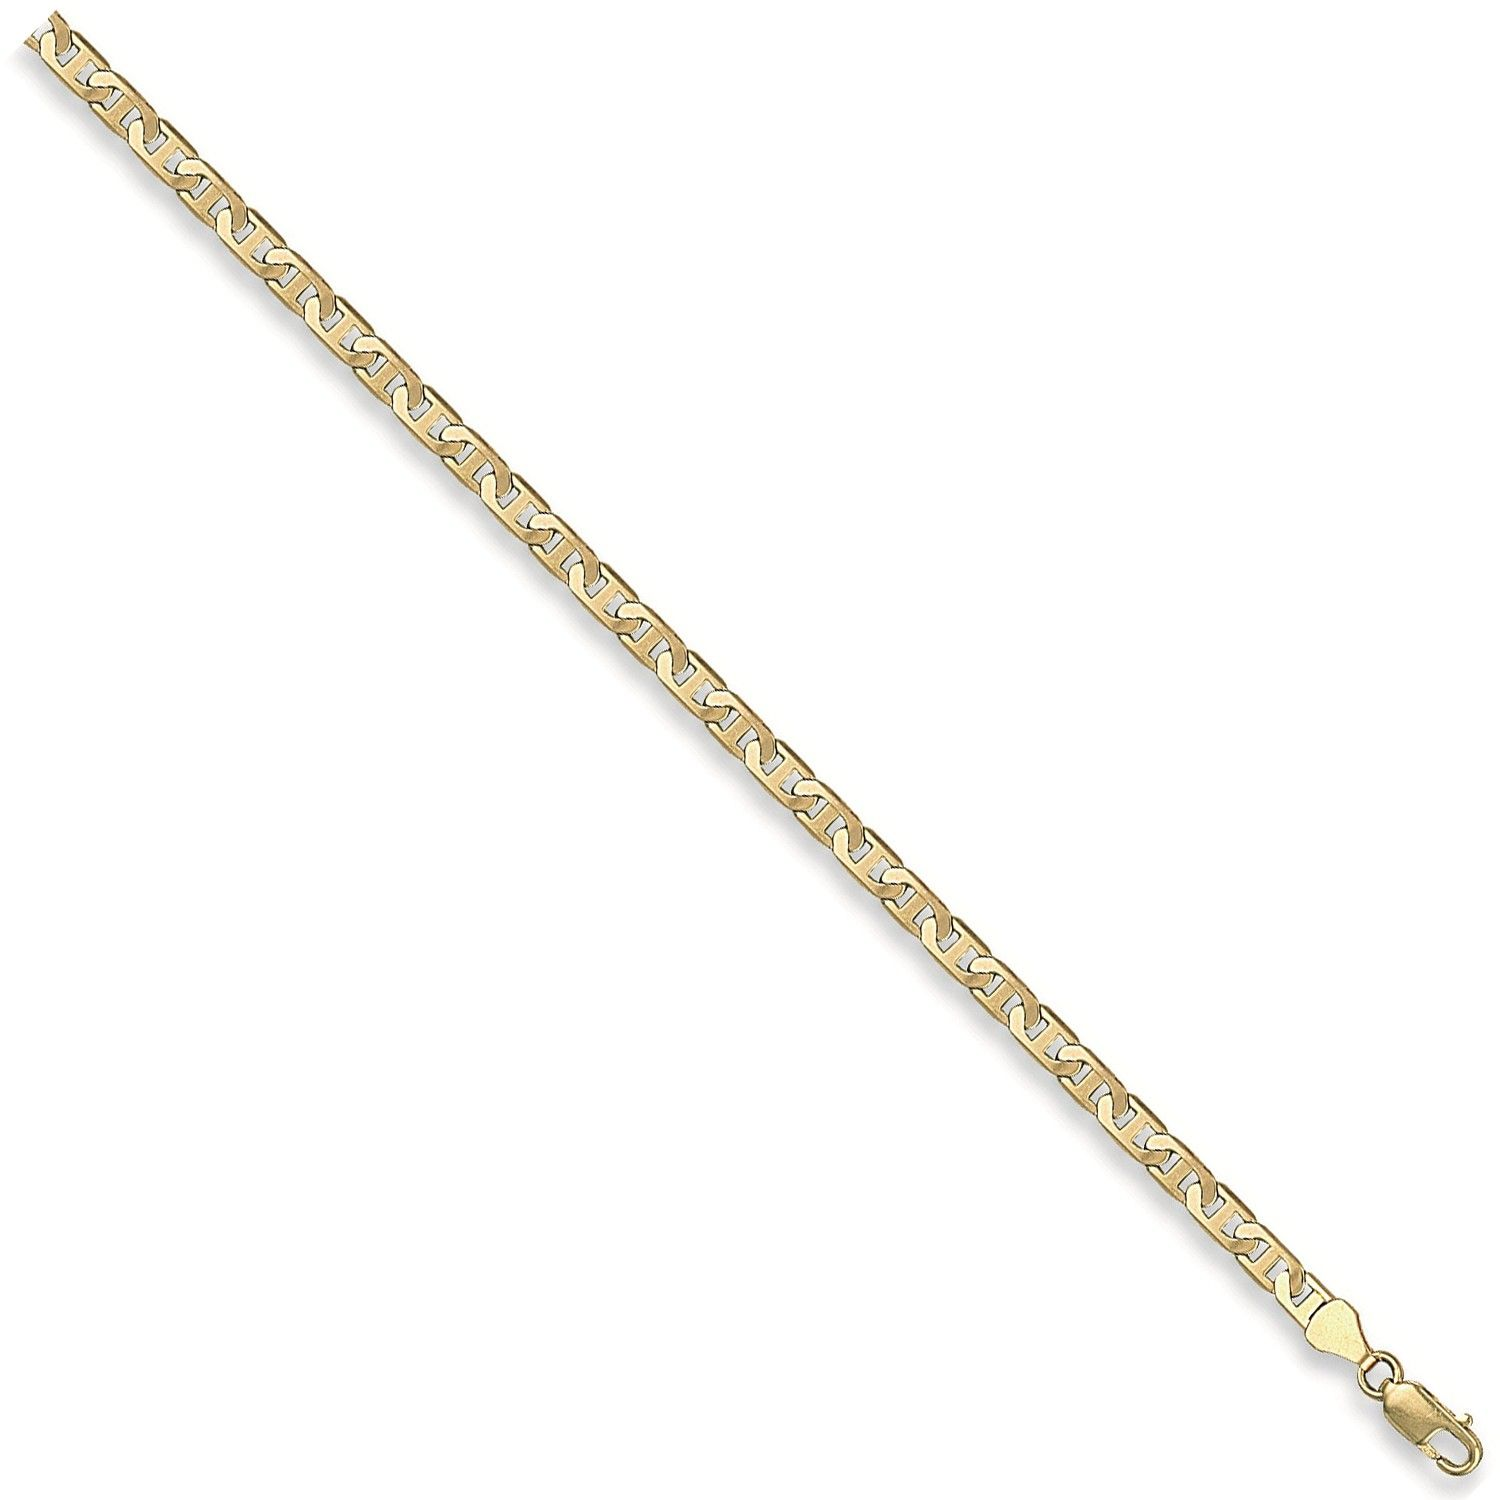 9ct Yellow Gold 4.5mm Anchor Chain